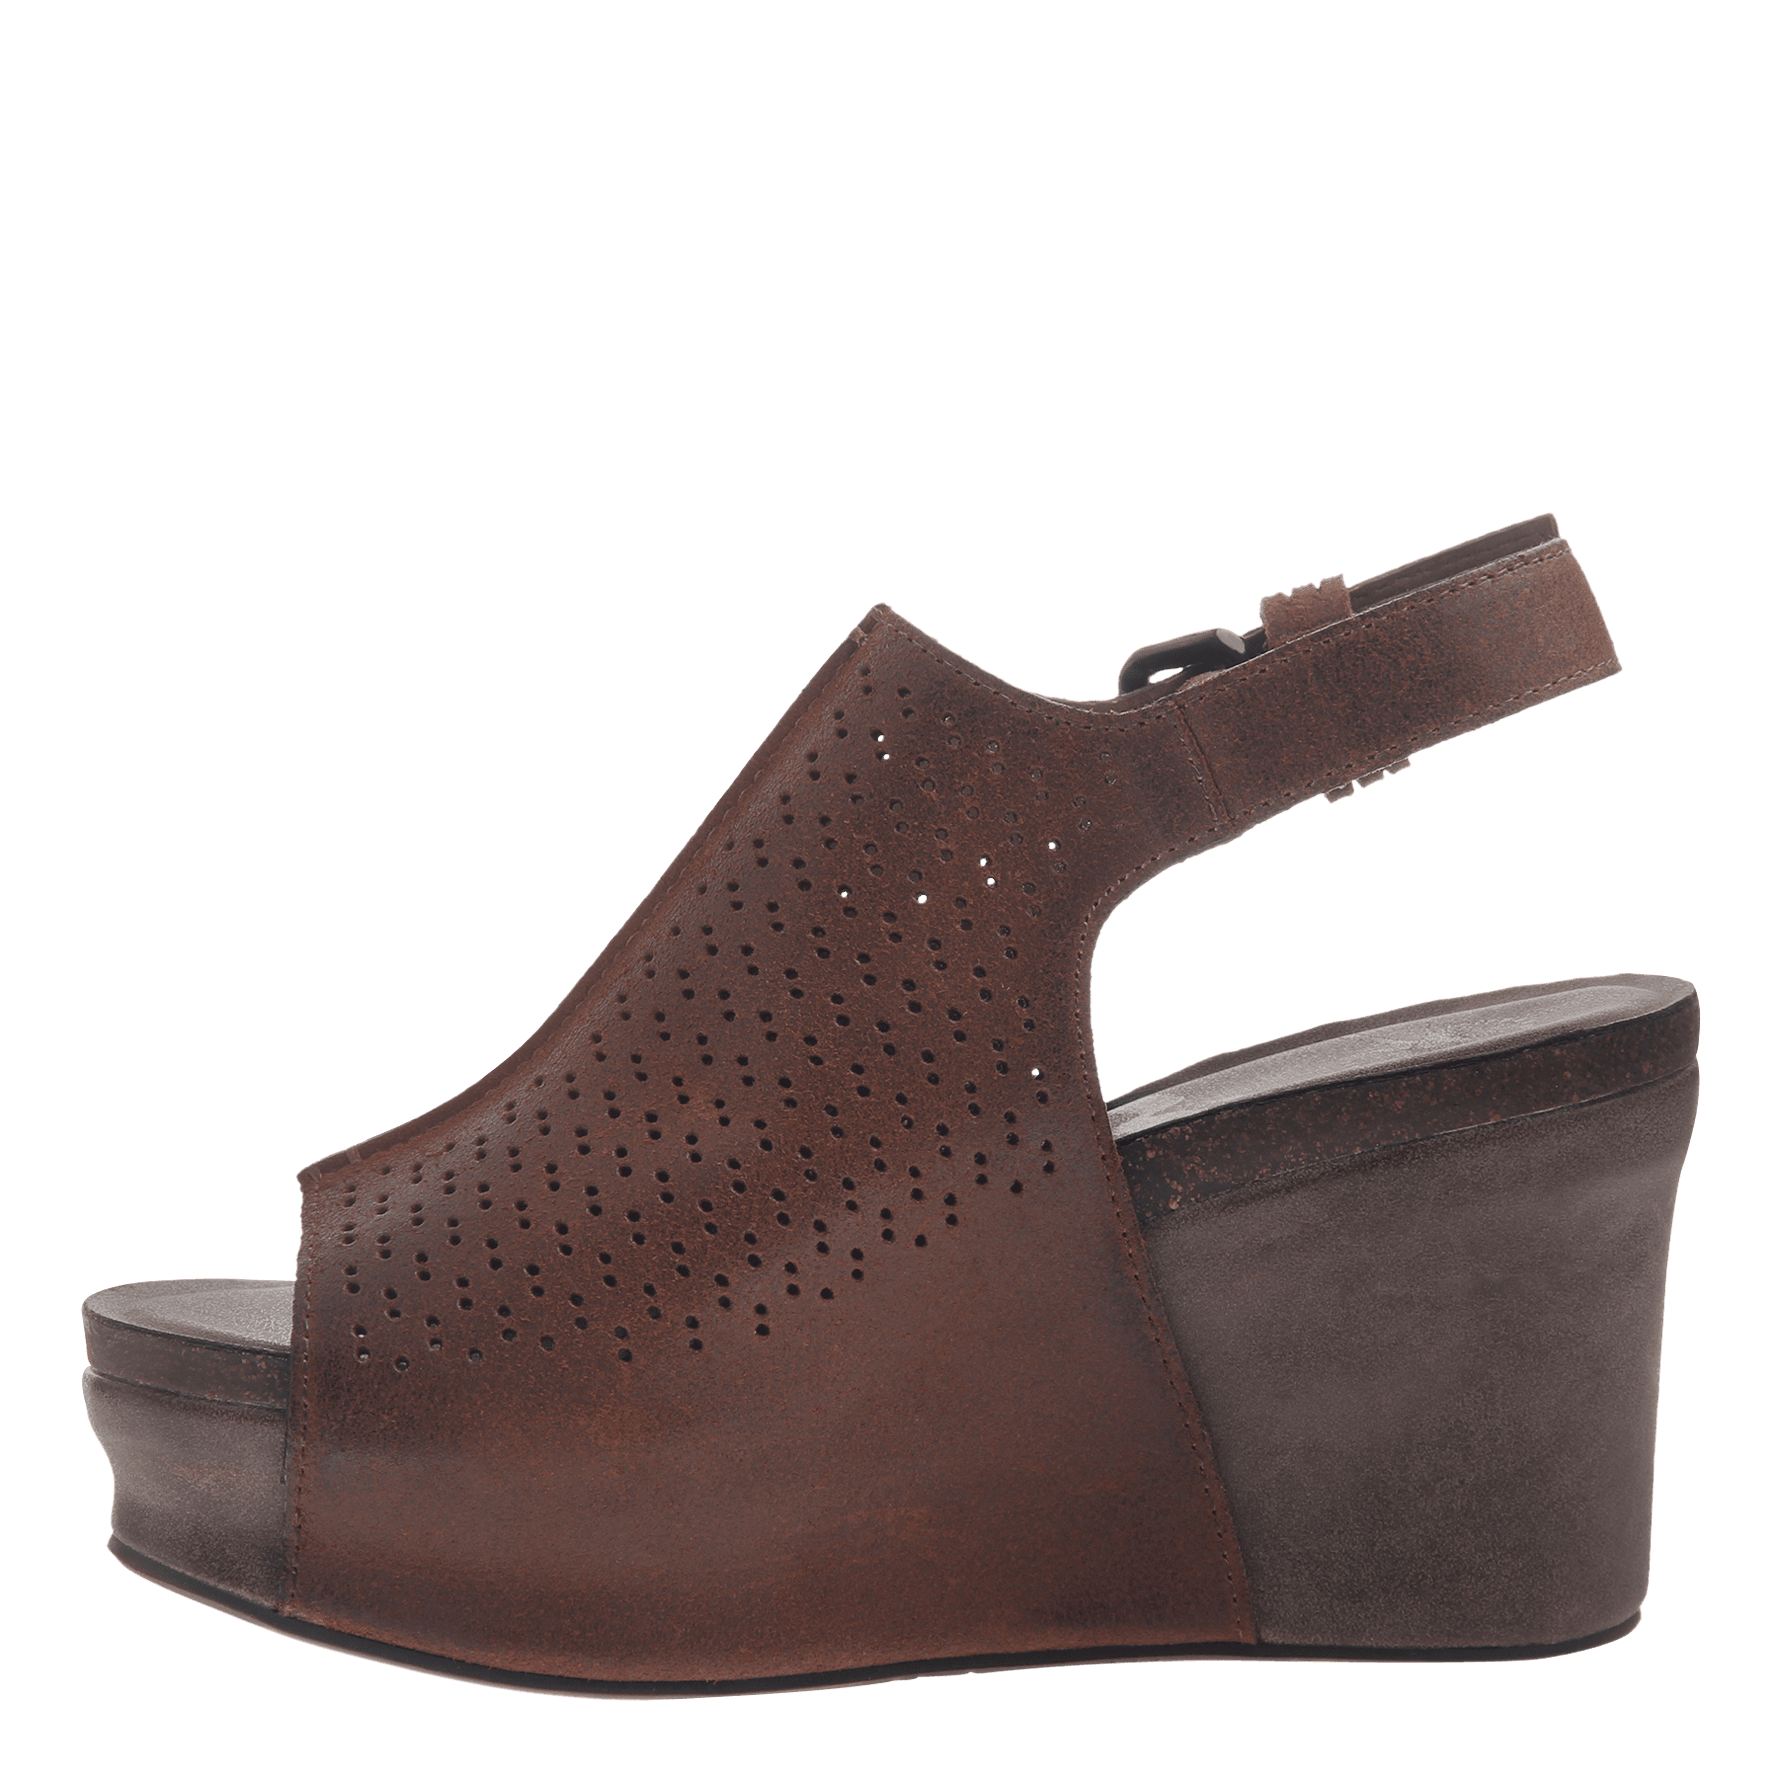 a888f075551d Womens platform wedge jaunt in new tan inside view